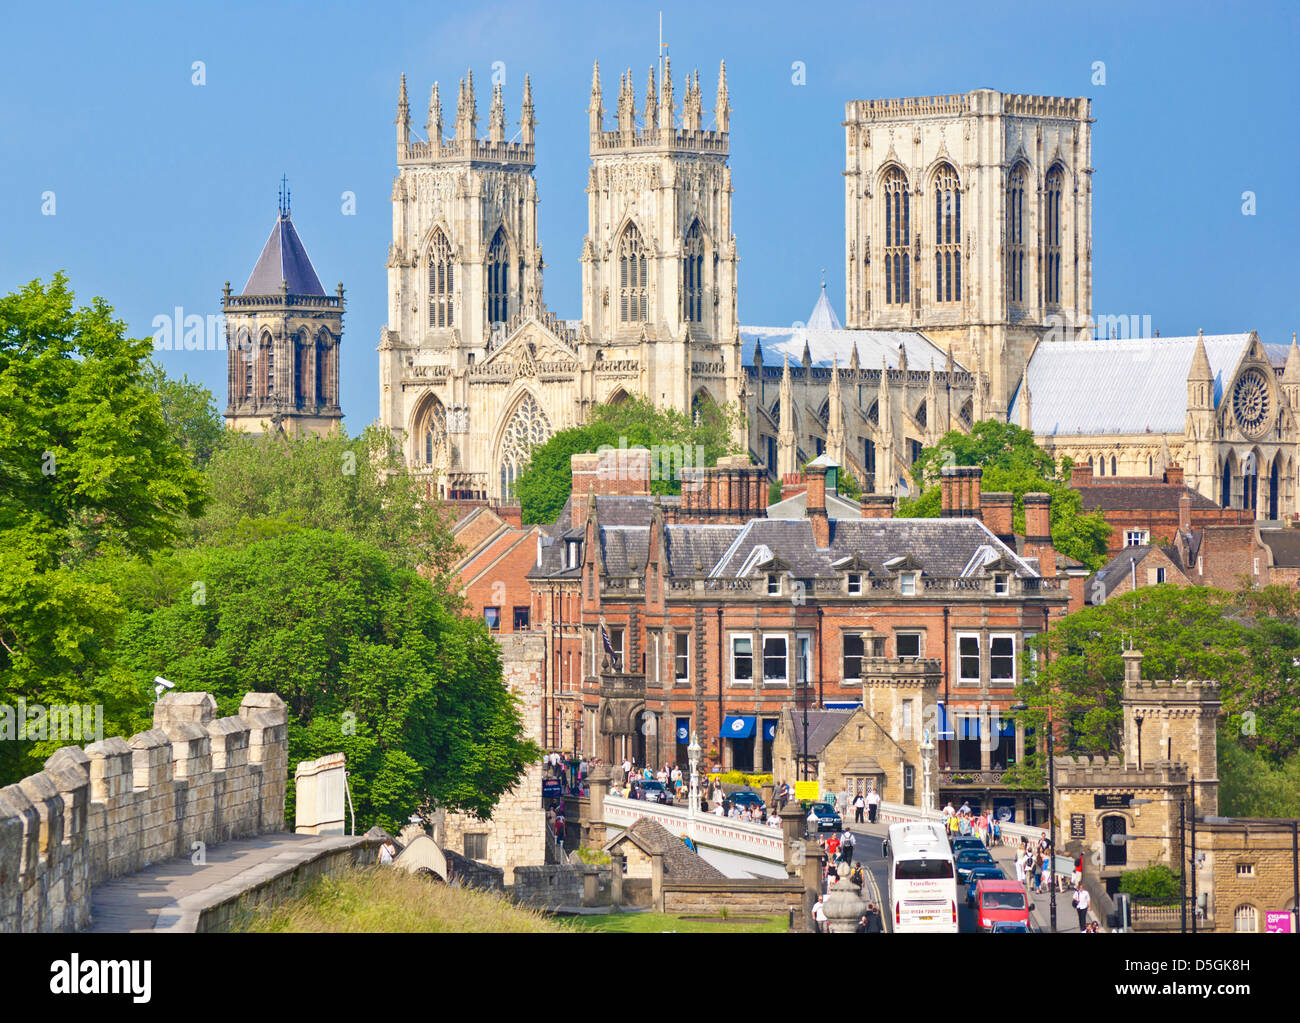 York Minster and a section of the historic york city walls along Station road York Yorkshire England UK GB EU Europe - Stock Image